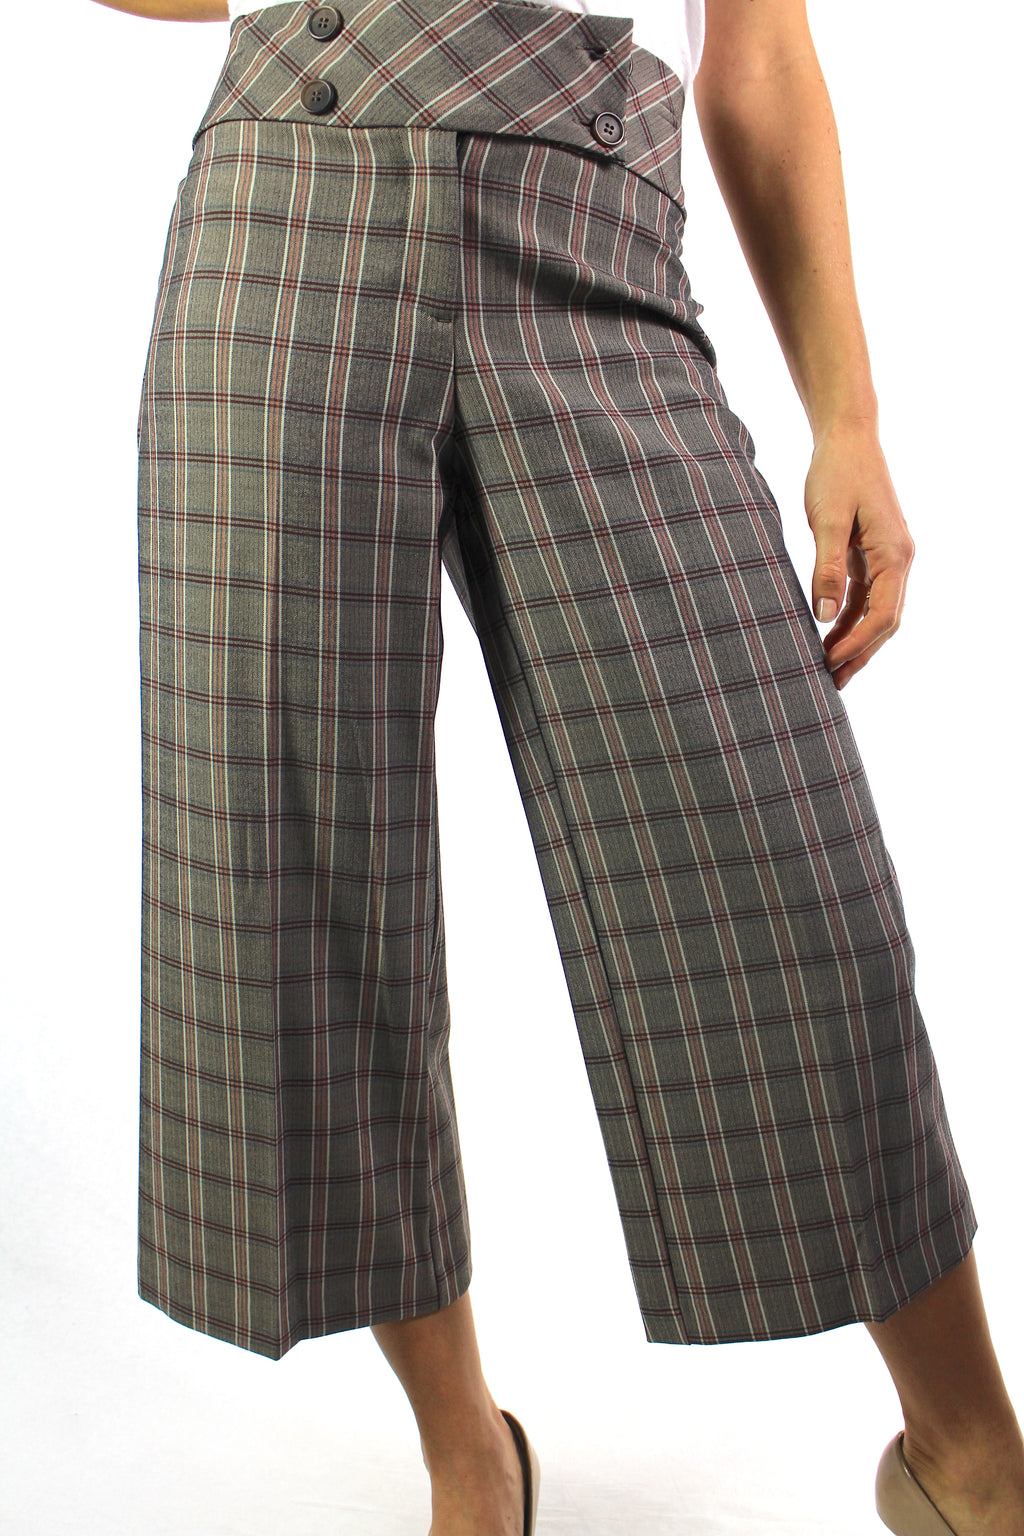 Women's Wide Leg Culottes